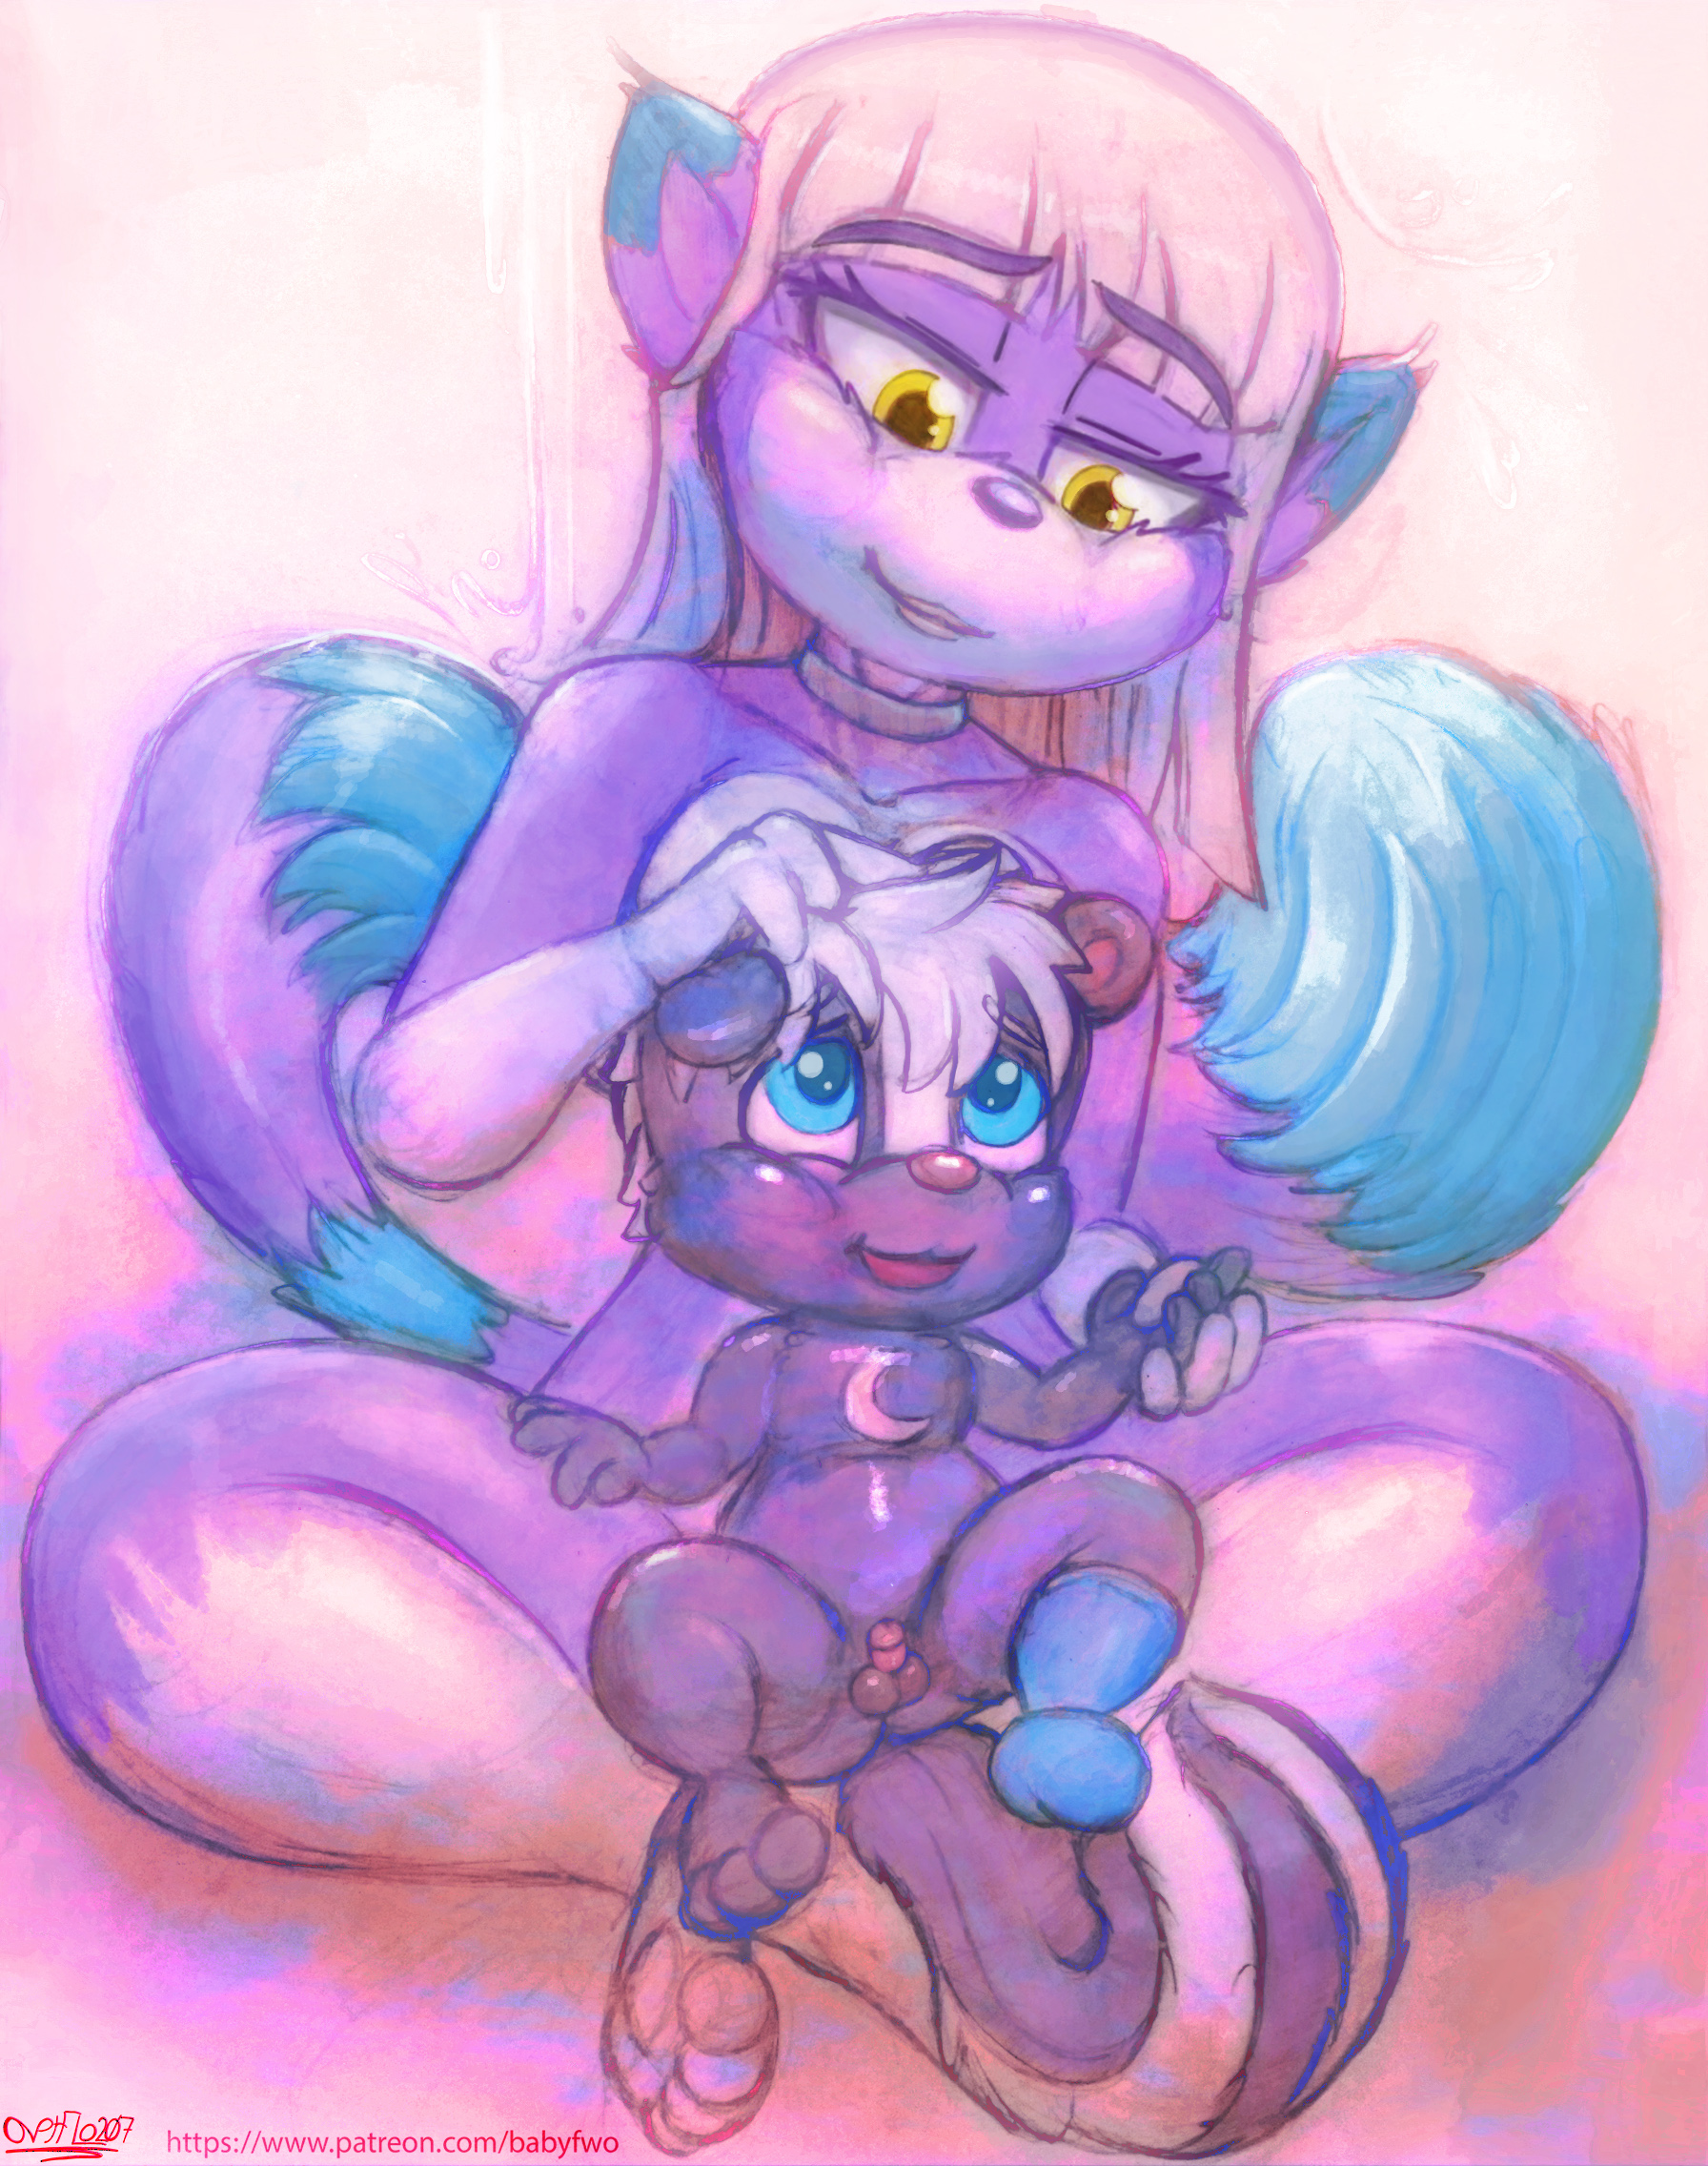 3418542_OverFlo207_ozzie_-_momma_luna_and_her_cub_nude_-_eye_edited_version_